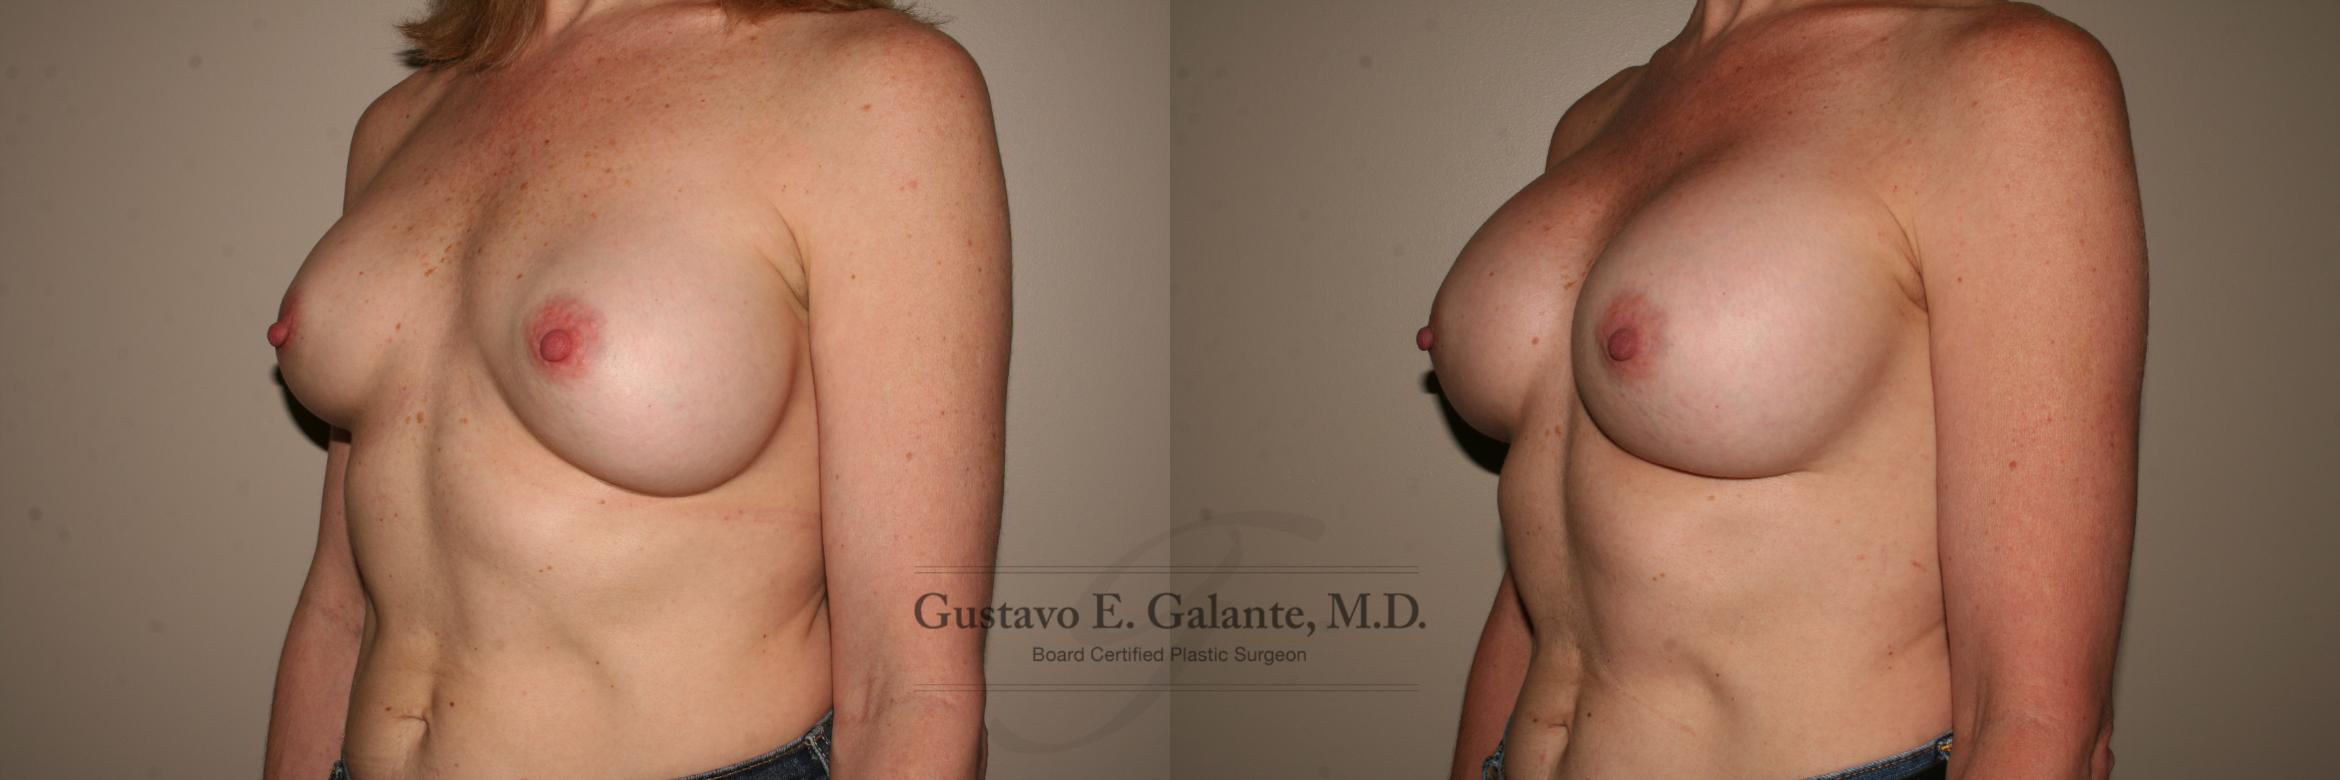 Breast Augmentation Case 115 Before & After View #2 | Valparaiso & Schererville, IN | Gustavo E. Galante, MD